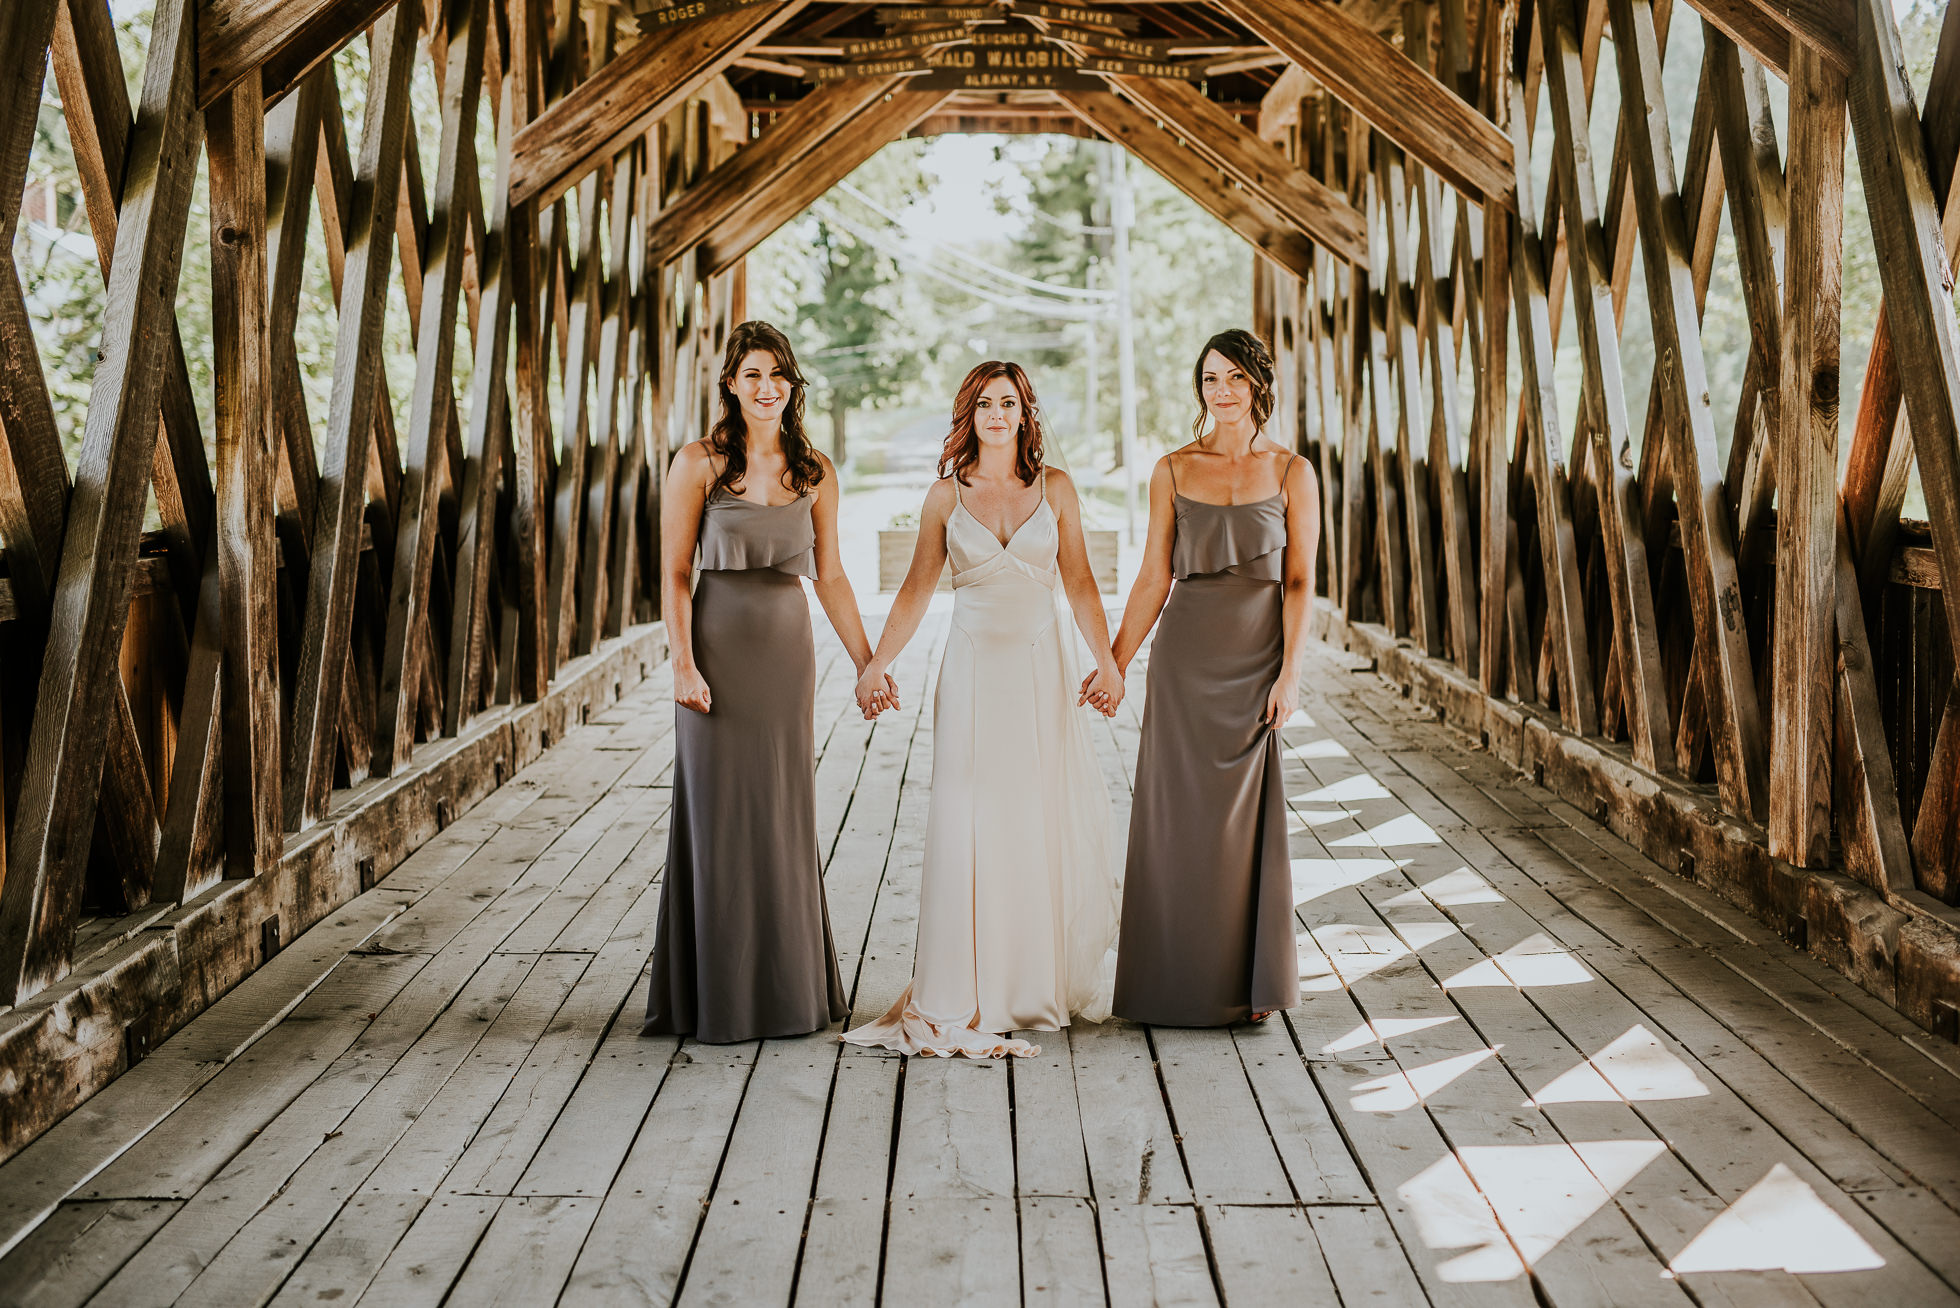 bride and bridesmaids on bridge at olde tater barn wedding in central bridge, ny photographed by traverse the tides